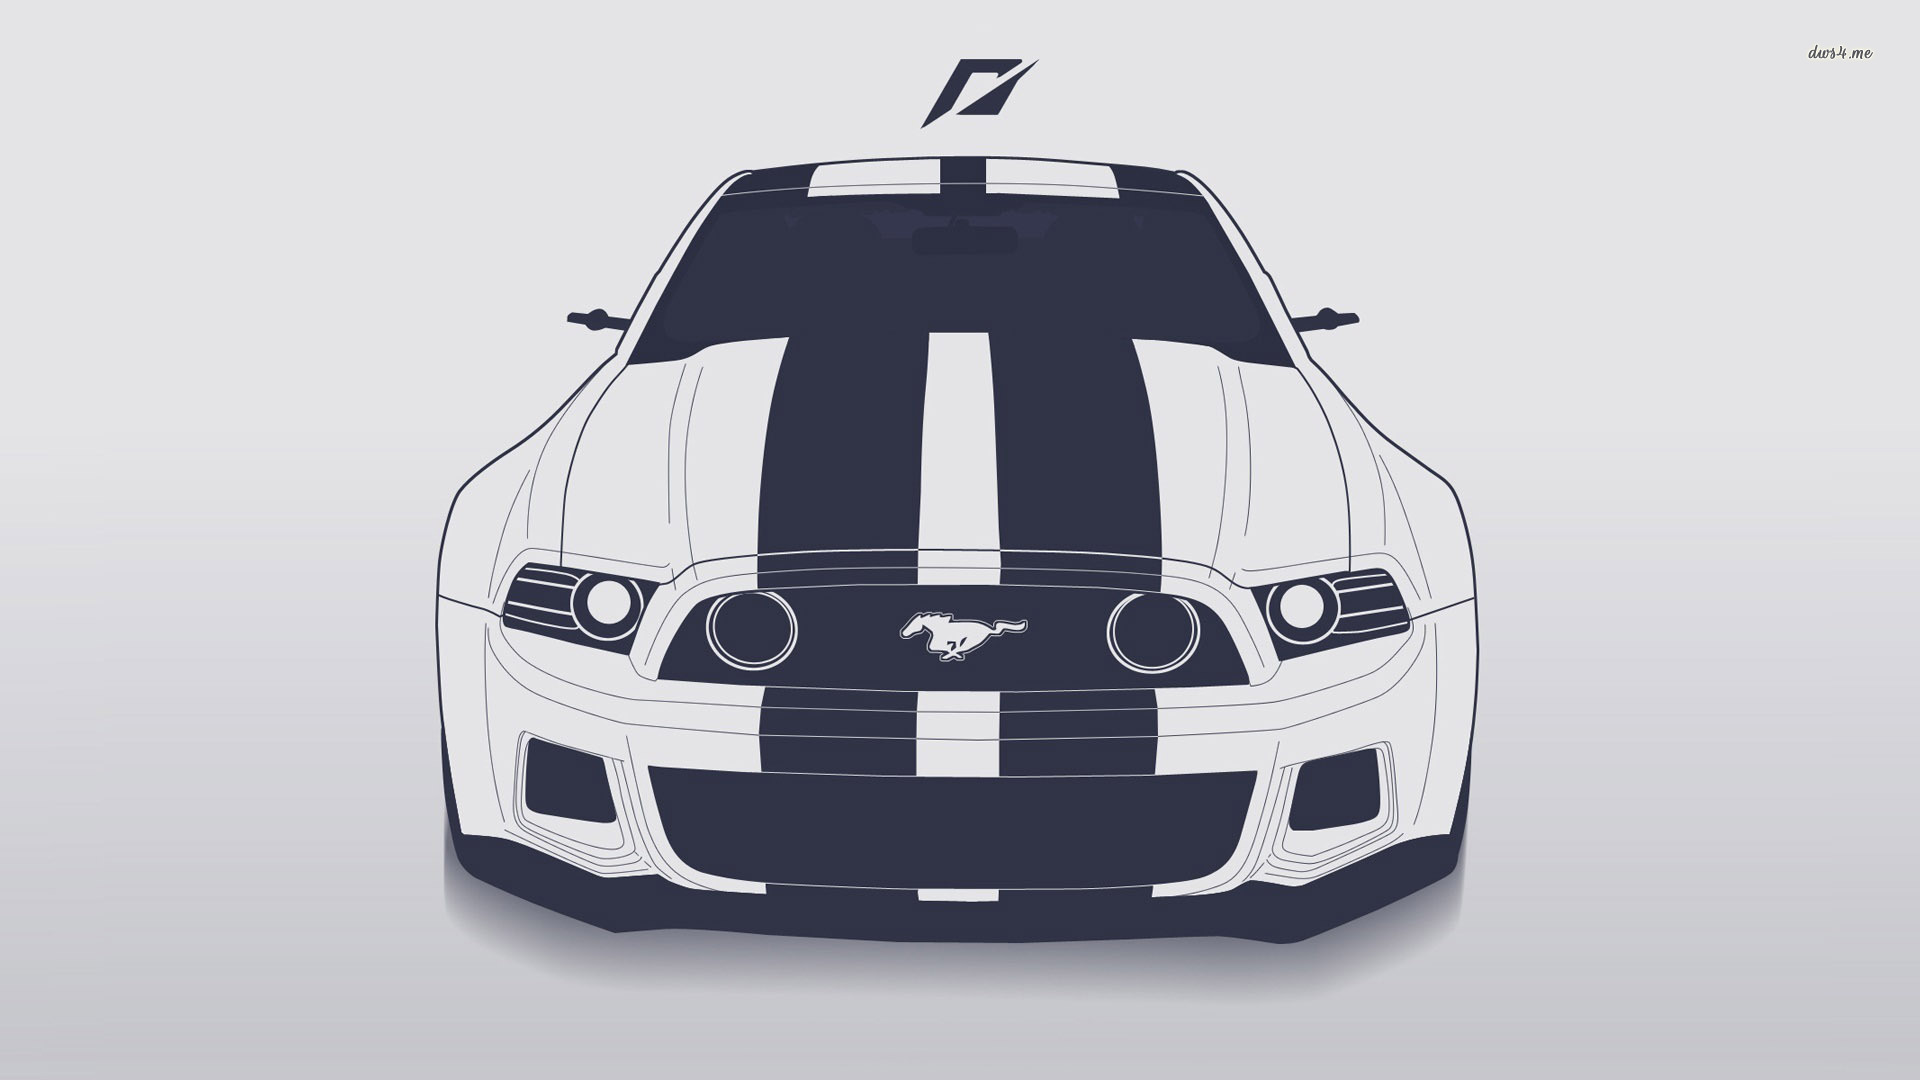 ford mustang vector  hd cars  4k wallpapers  images black and white police car clipart black and white classic car clipart